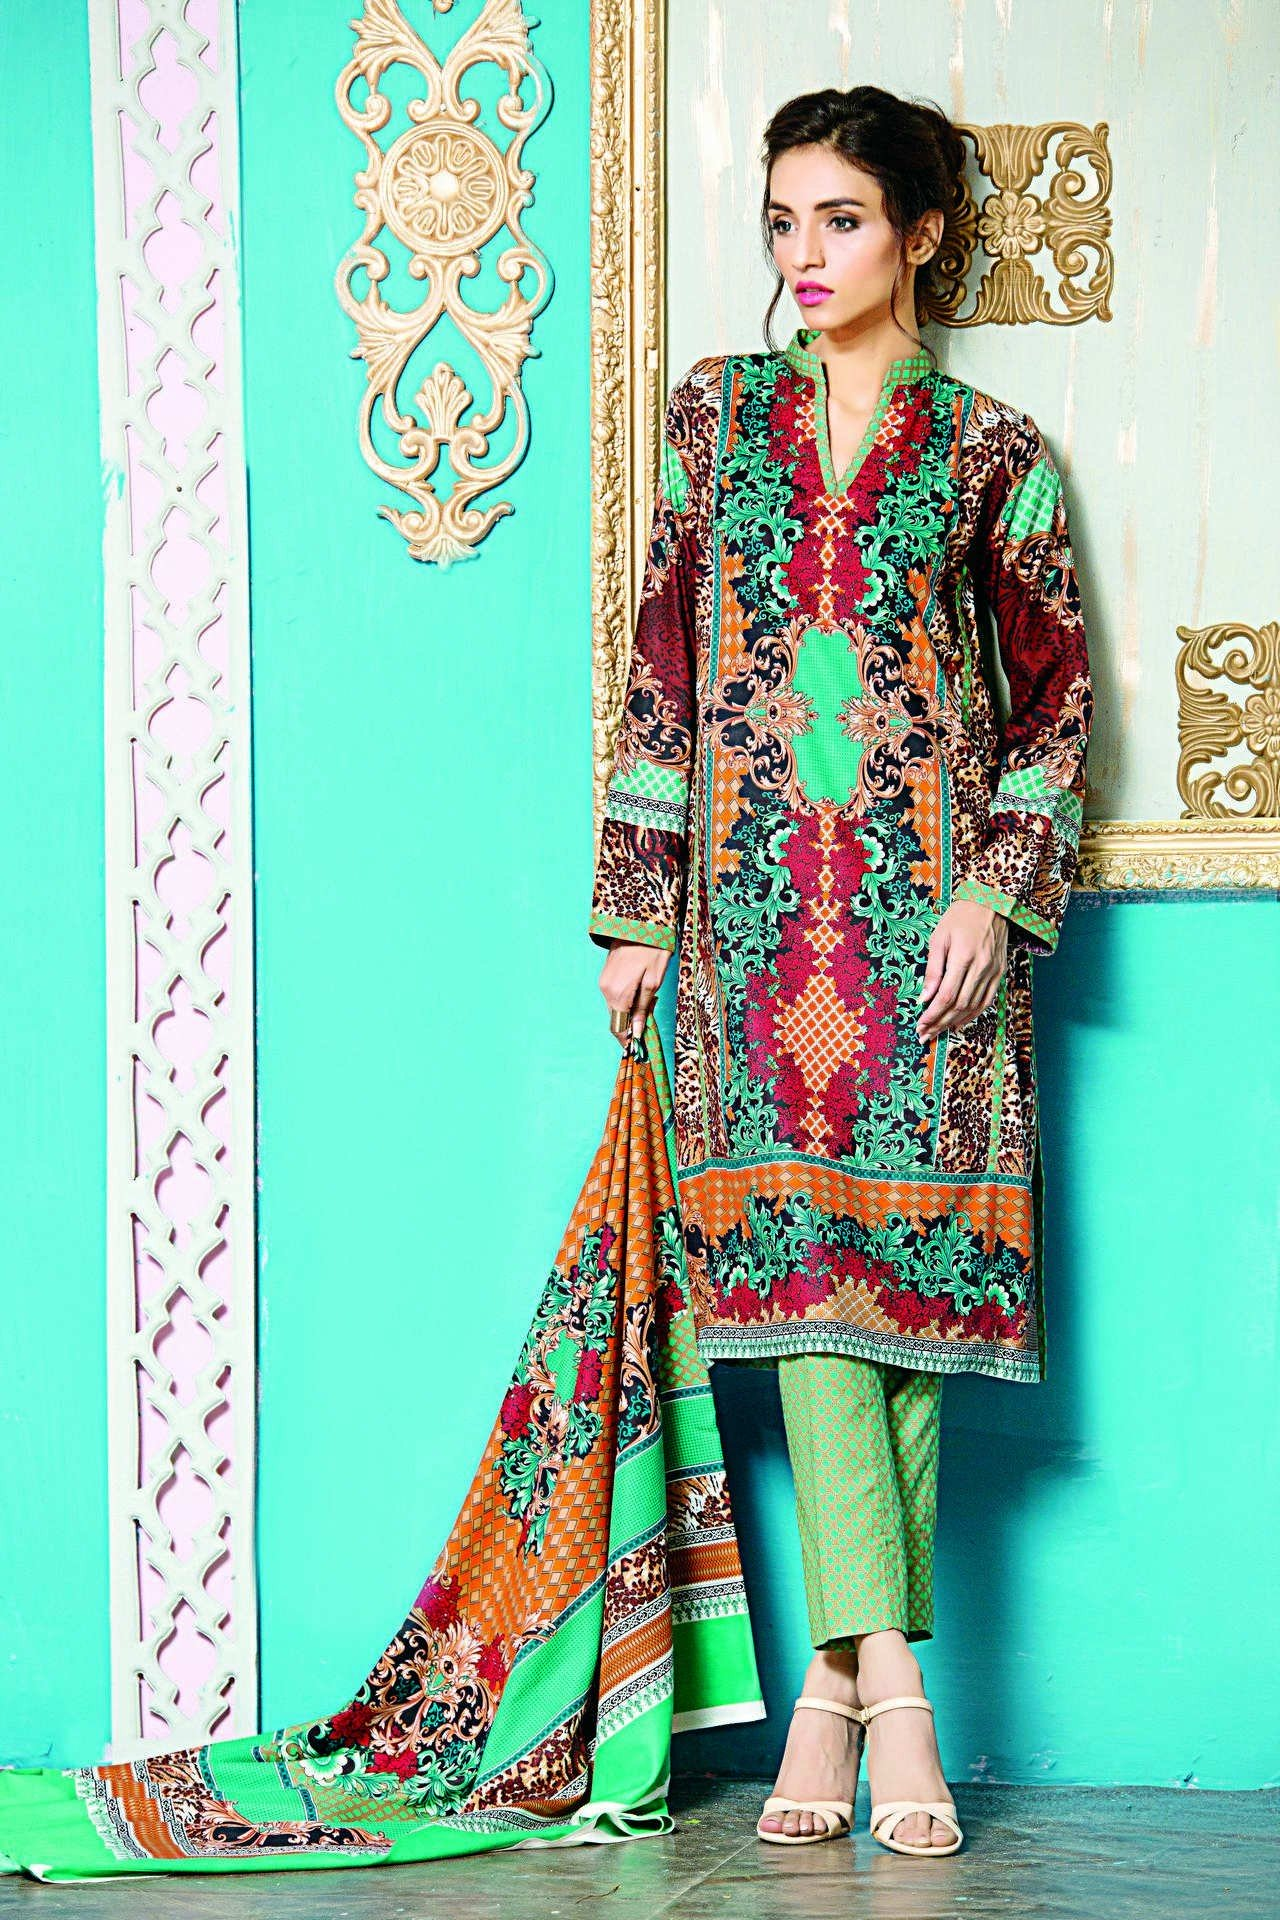 Mesmerizing winter dresses collection of luxurious elan brand